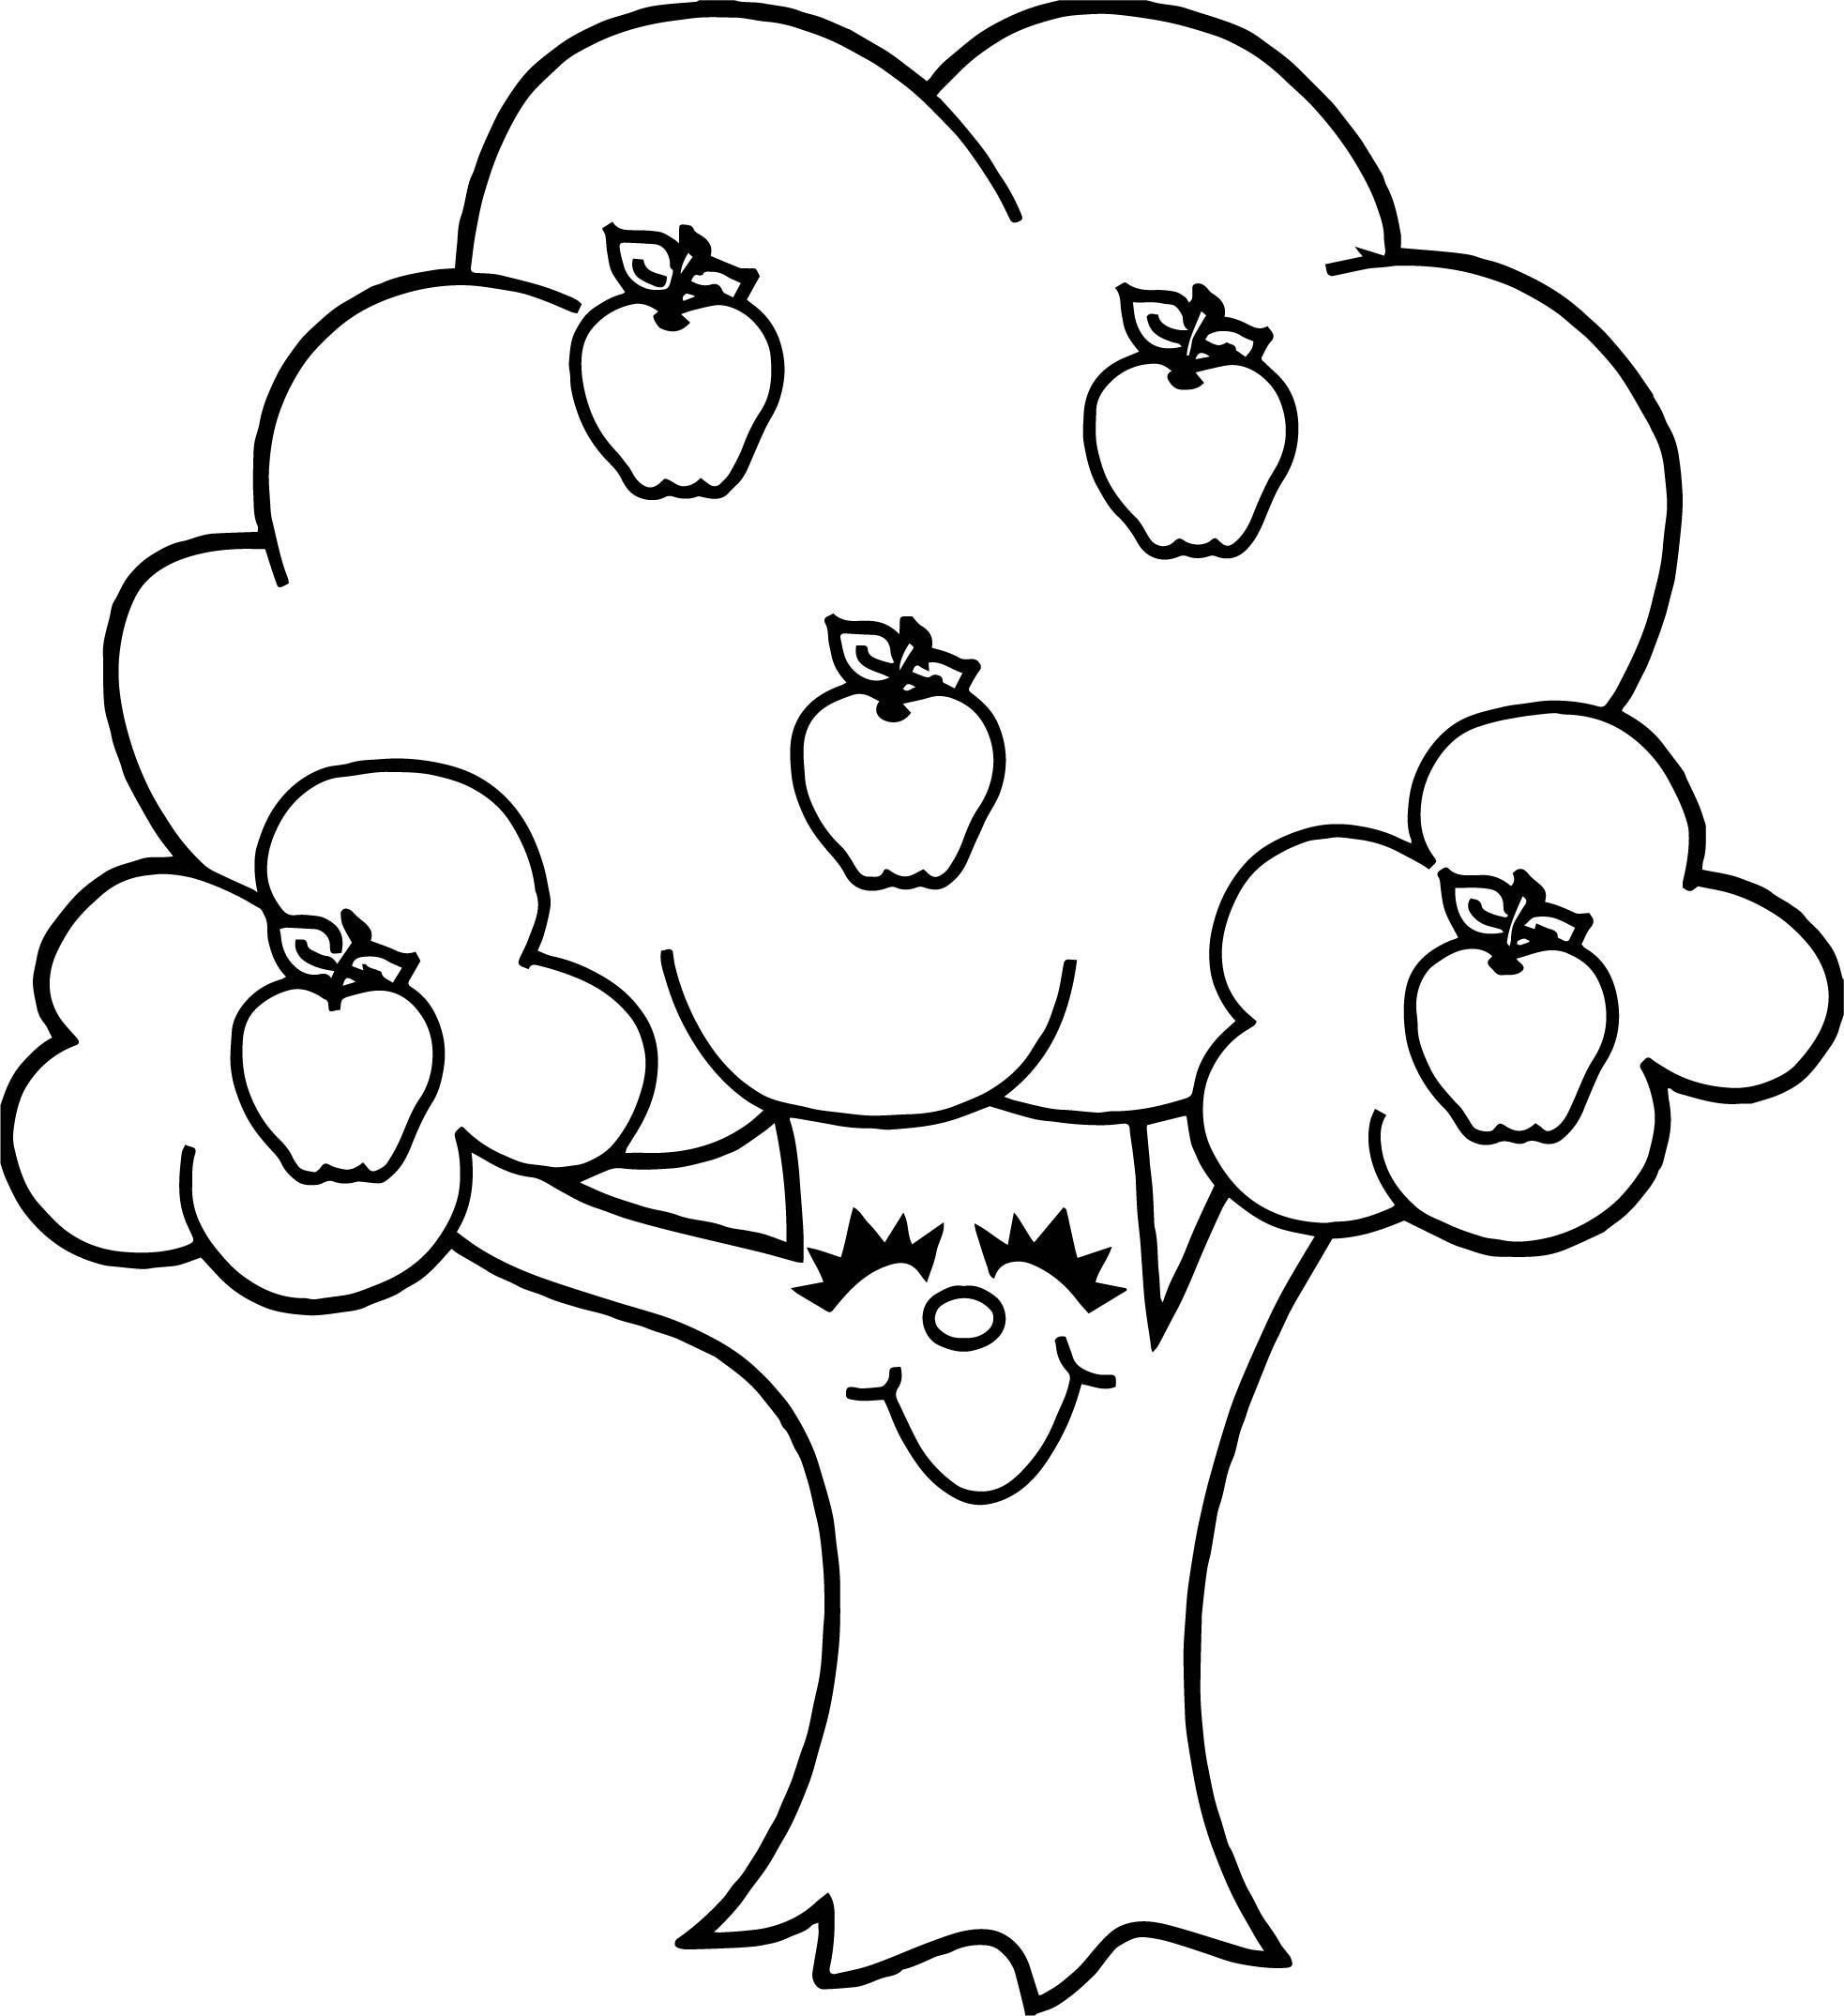 free apple coloring pages apple logo coloring pages at getcoloringscom free free coloring apple pages